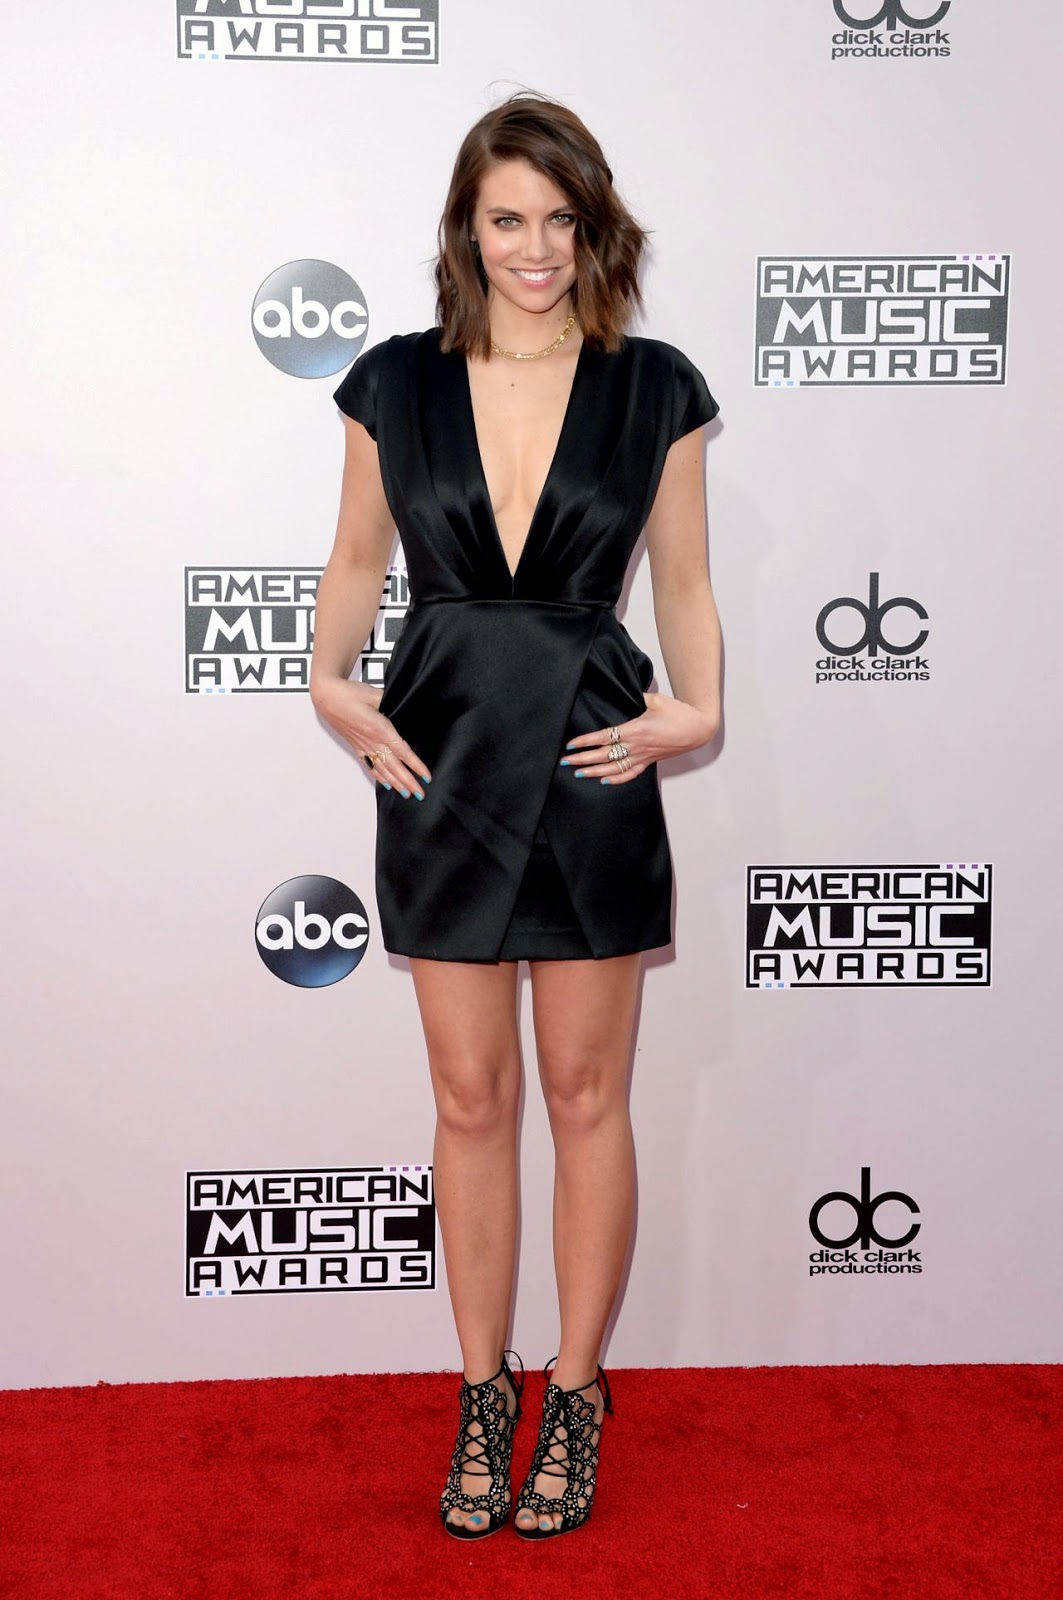 Lauren Cohan - 2014 American Music Awards - Red Carpet